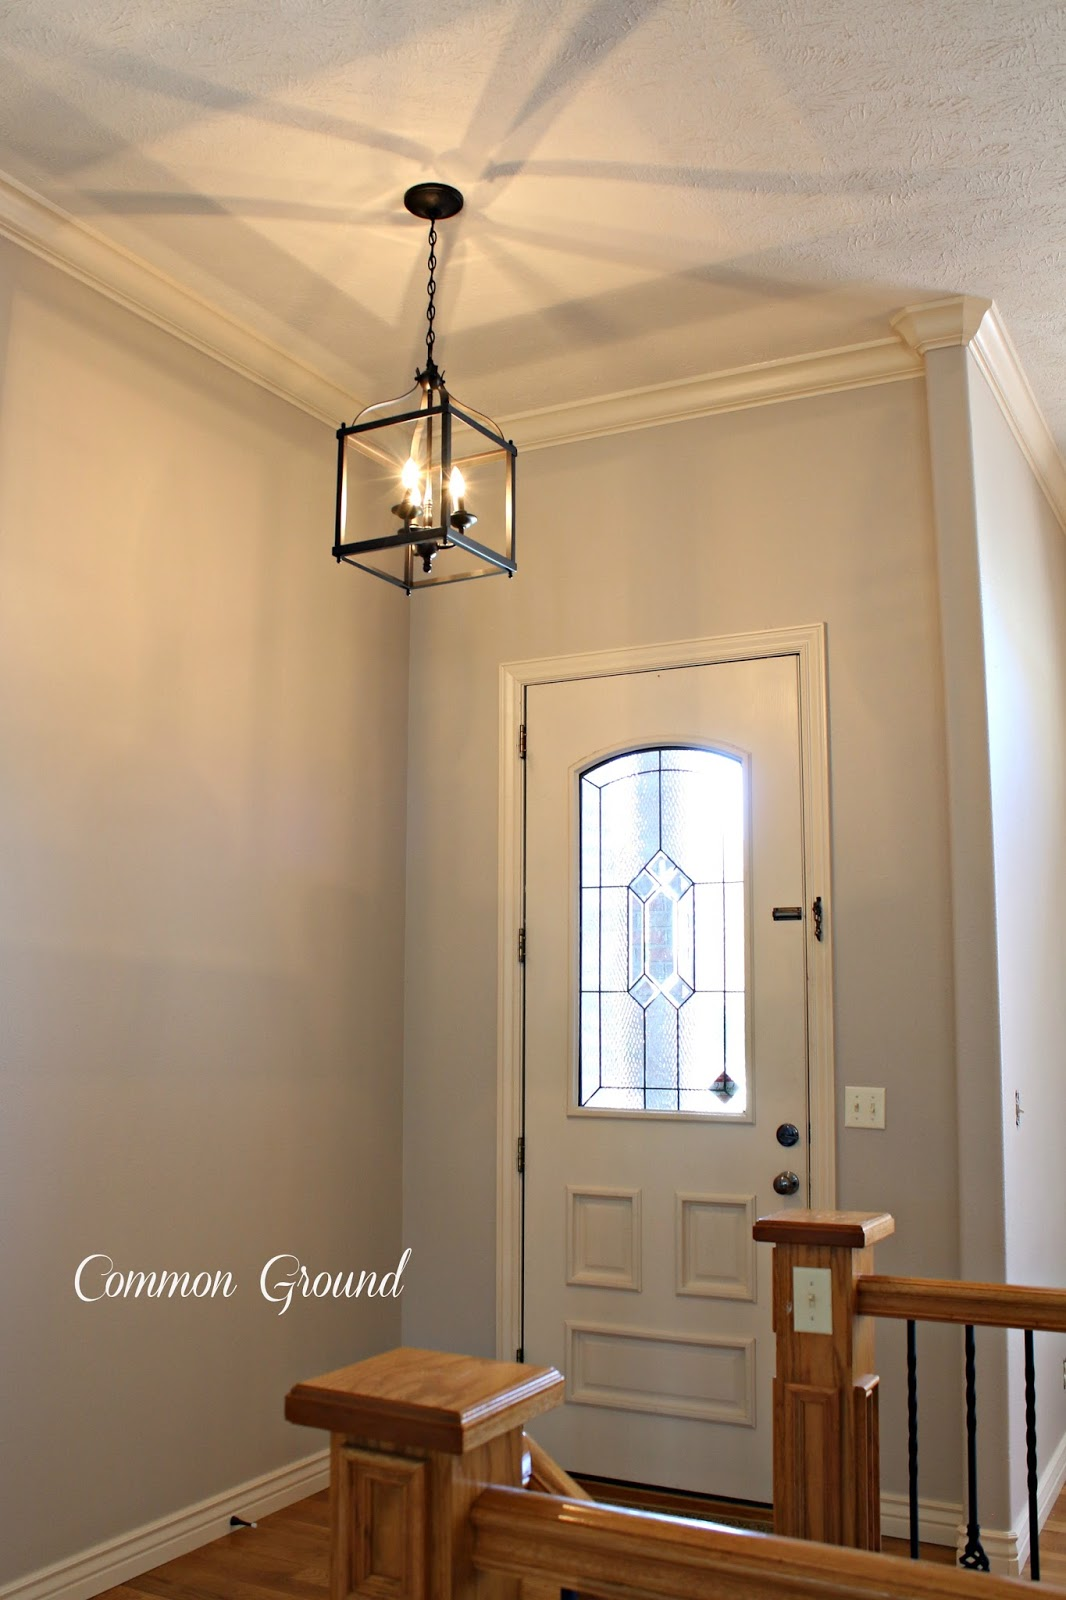 Fresh Com contacted me about checking out their lighting I was thrilled because they graciously sent me this wonderful lantern the Larkin Three Light Pendant